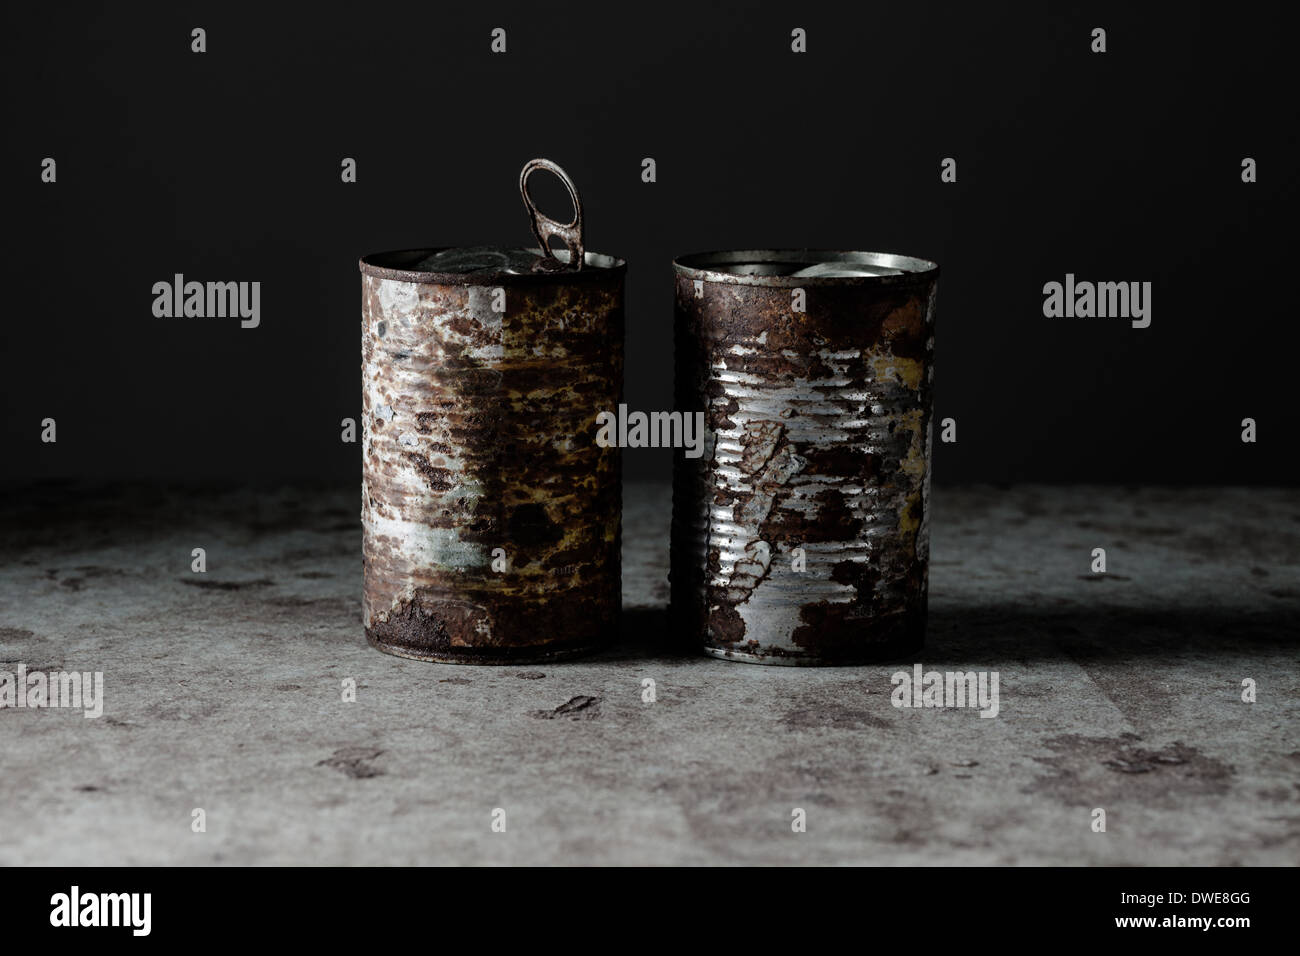 Two Rusted Cans on Dirty Surface - Stock Image